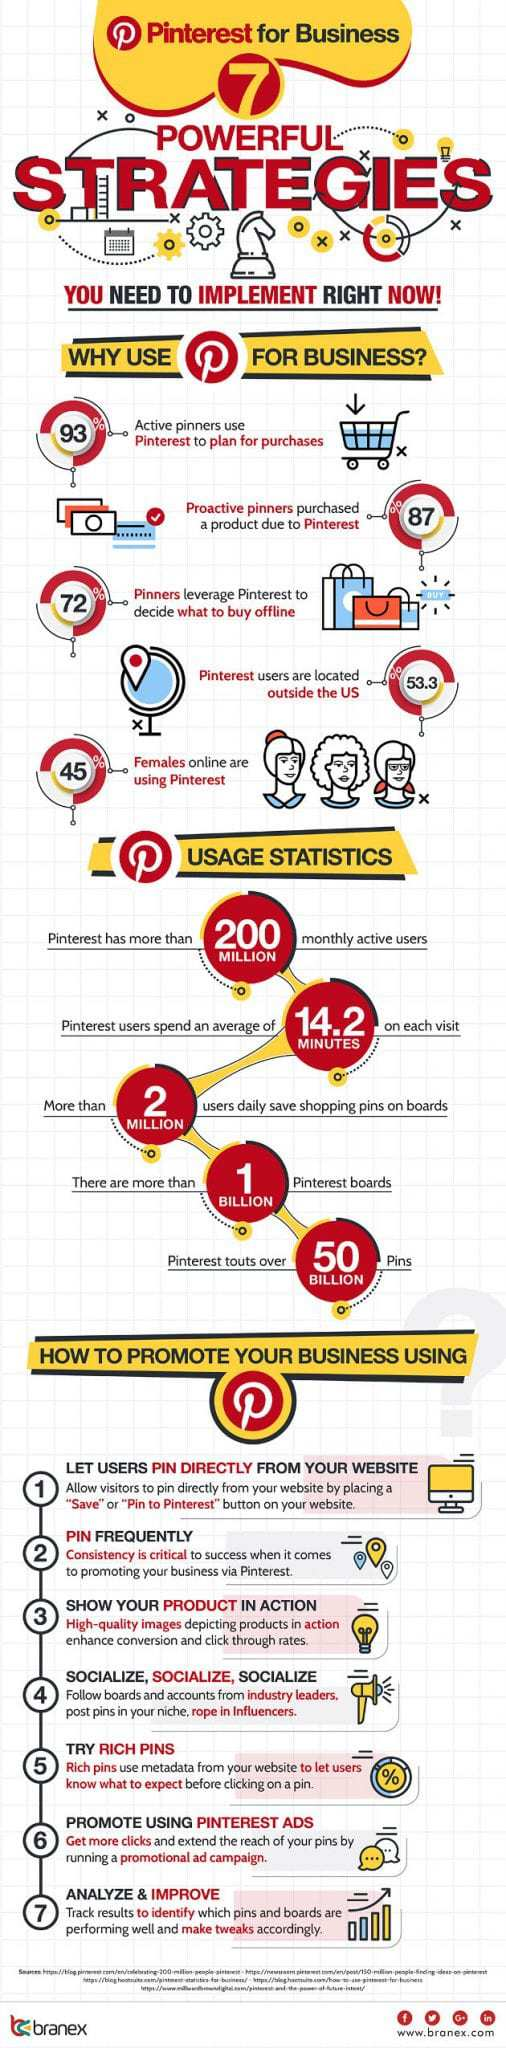 Learn seven more powerful strategies for business on Pinterest, in this great infographic.